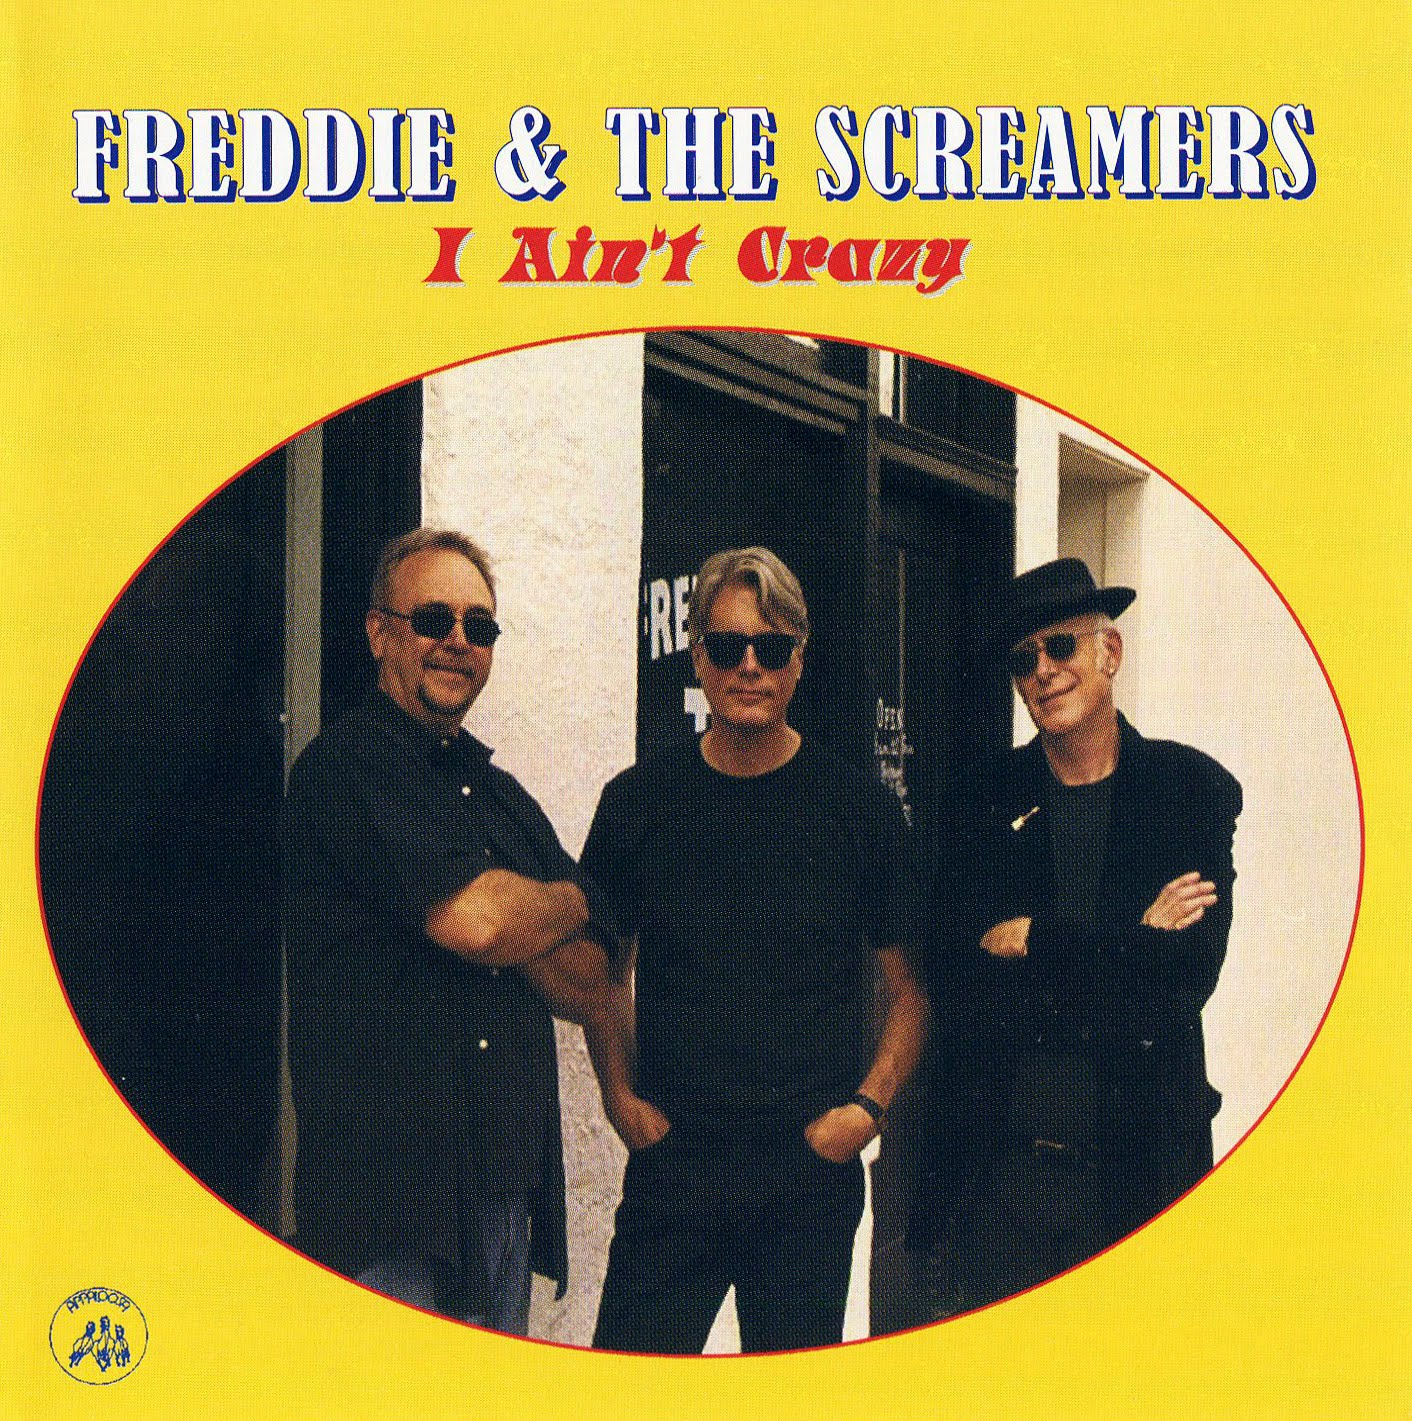 Freddie & The Screamers - I Ain't Crazy - Front.jpg